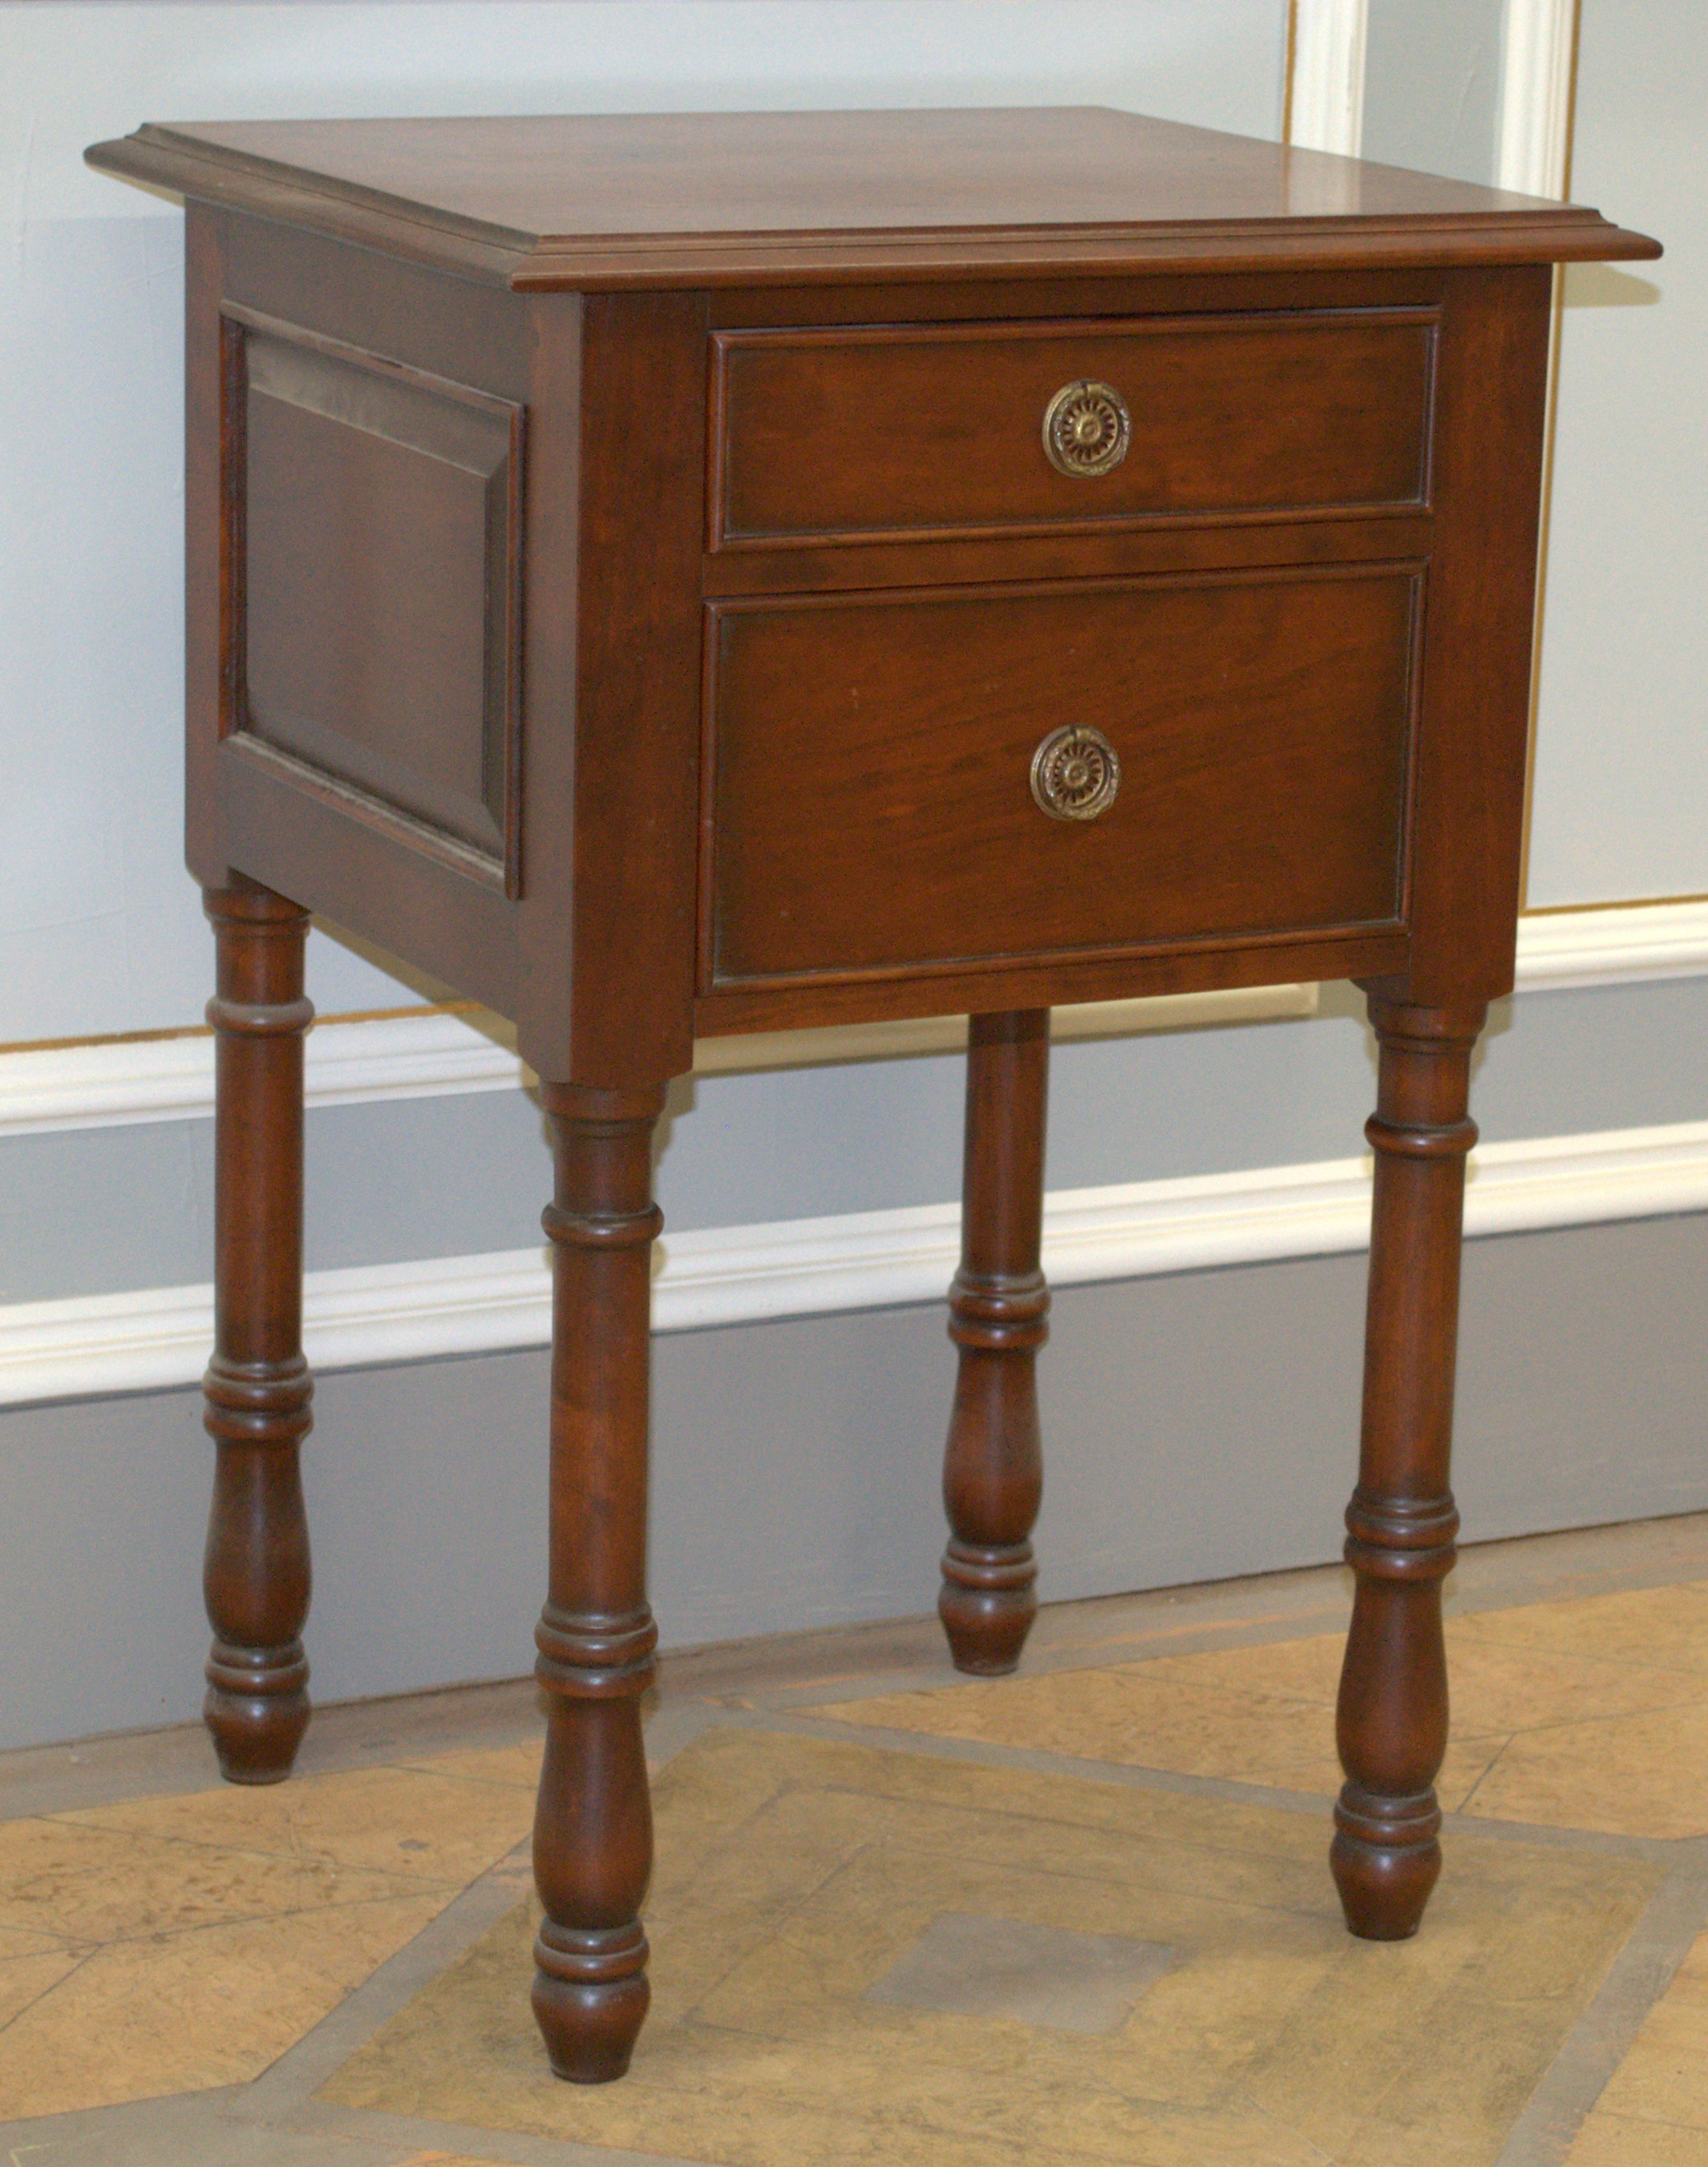 The Tudor Nightstand